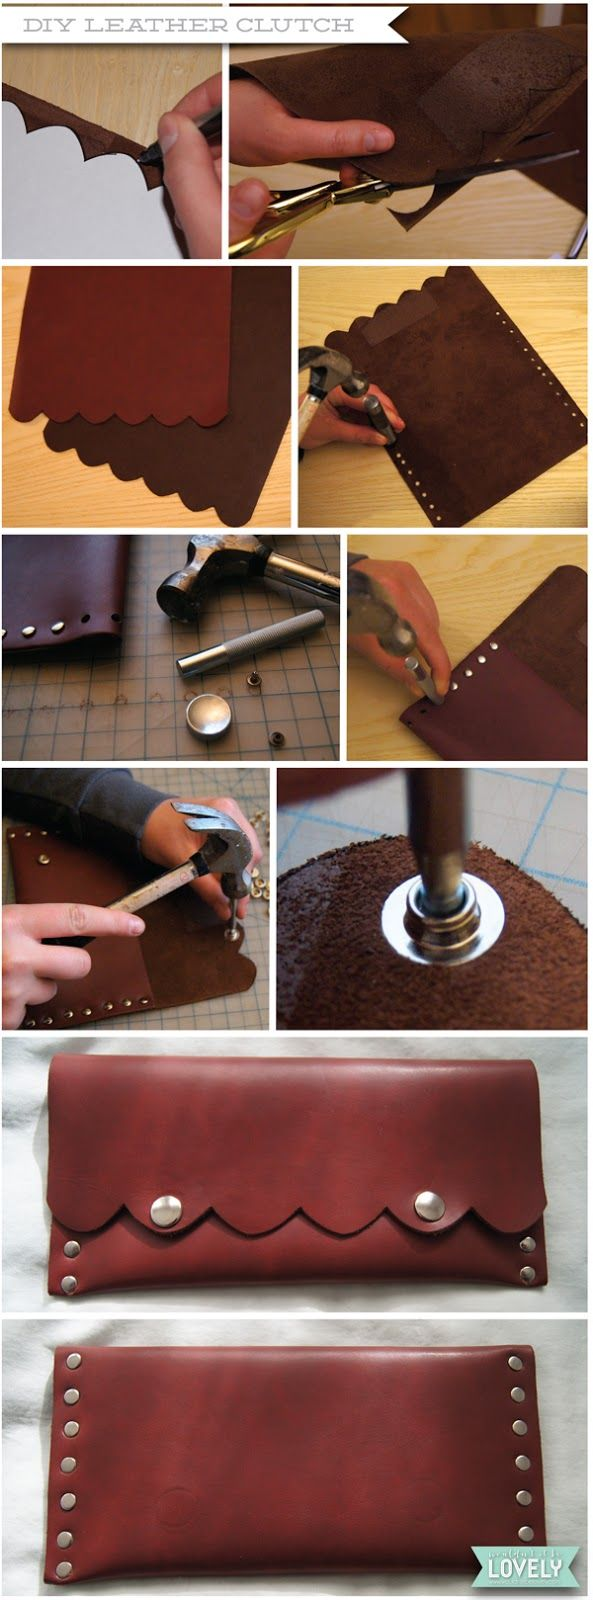 DIY Leather Clutch